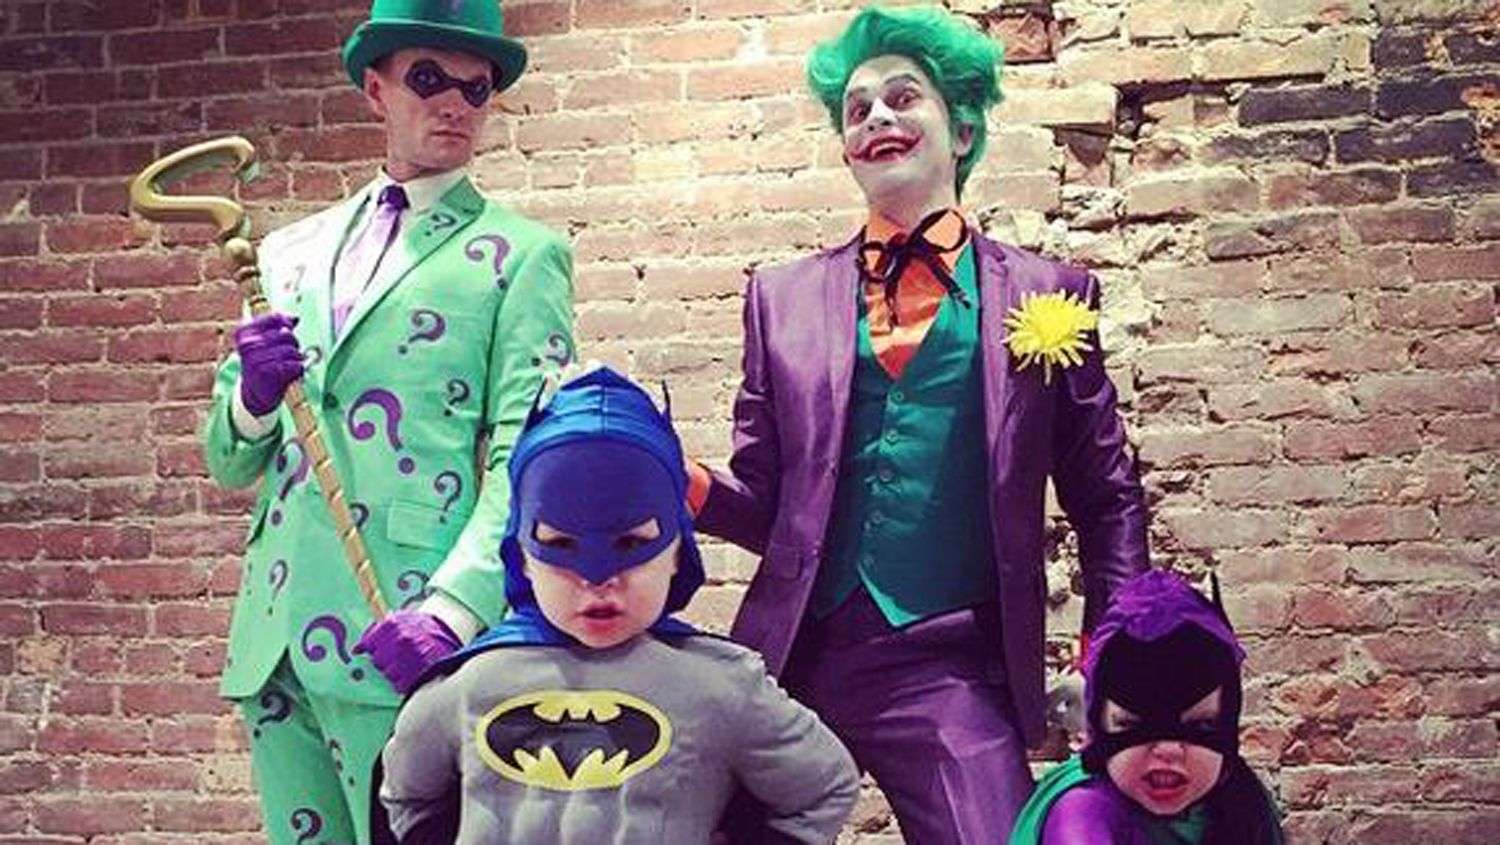 Super, again Neil Patrick Harris, Gotham family do